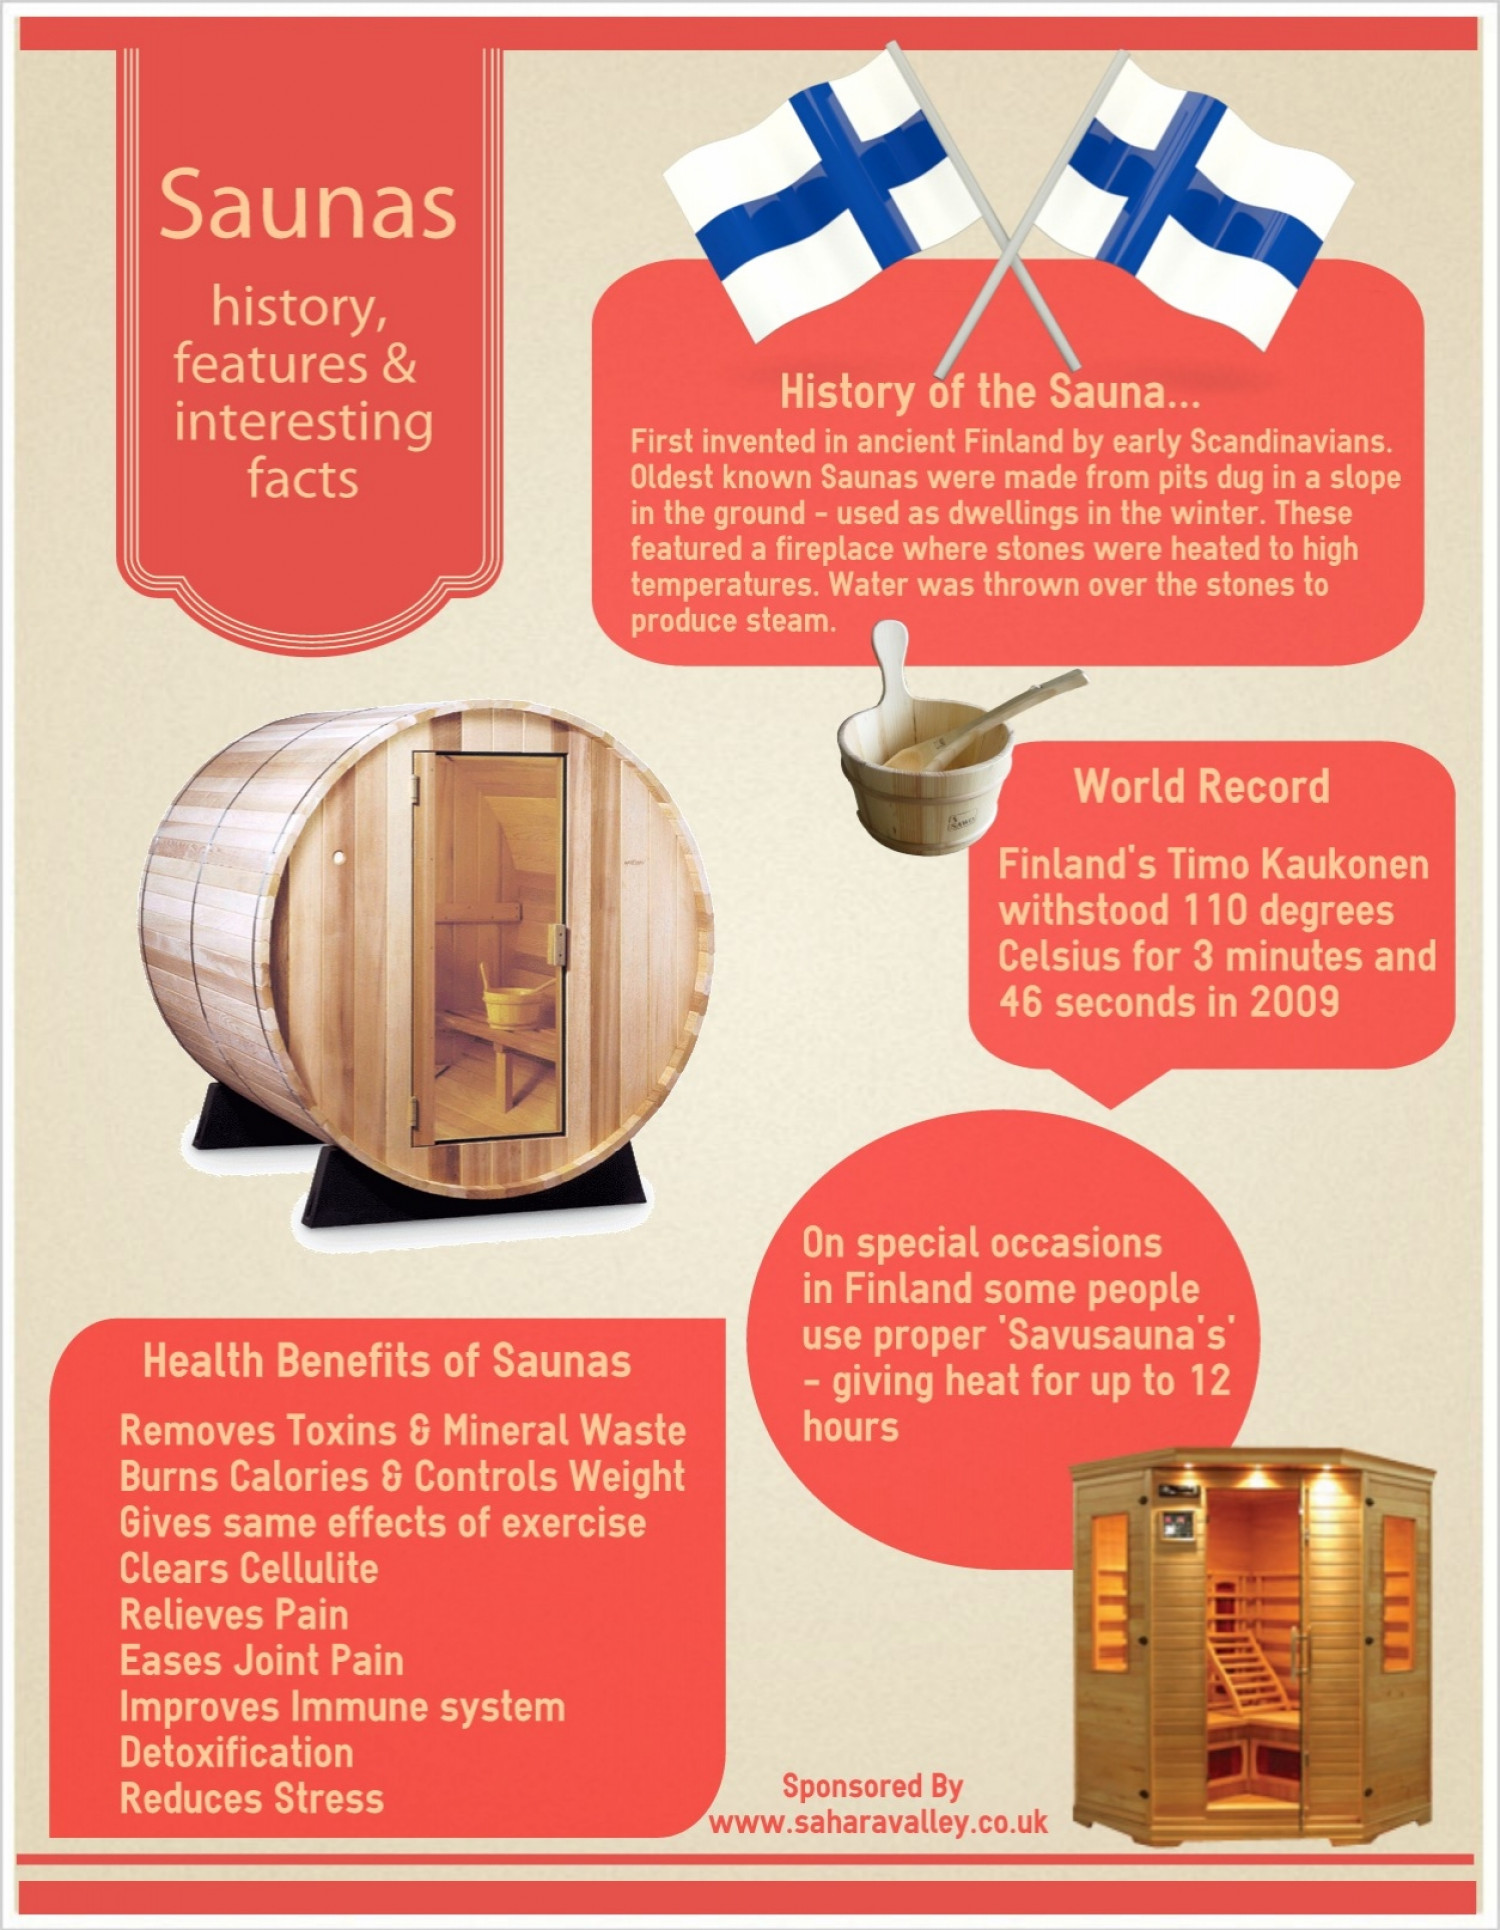 Saunas history, features & facts  Infographic